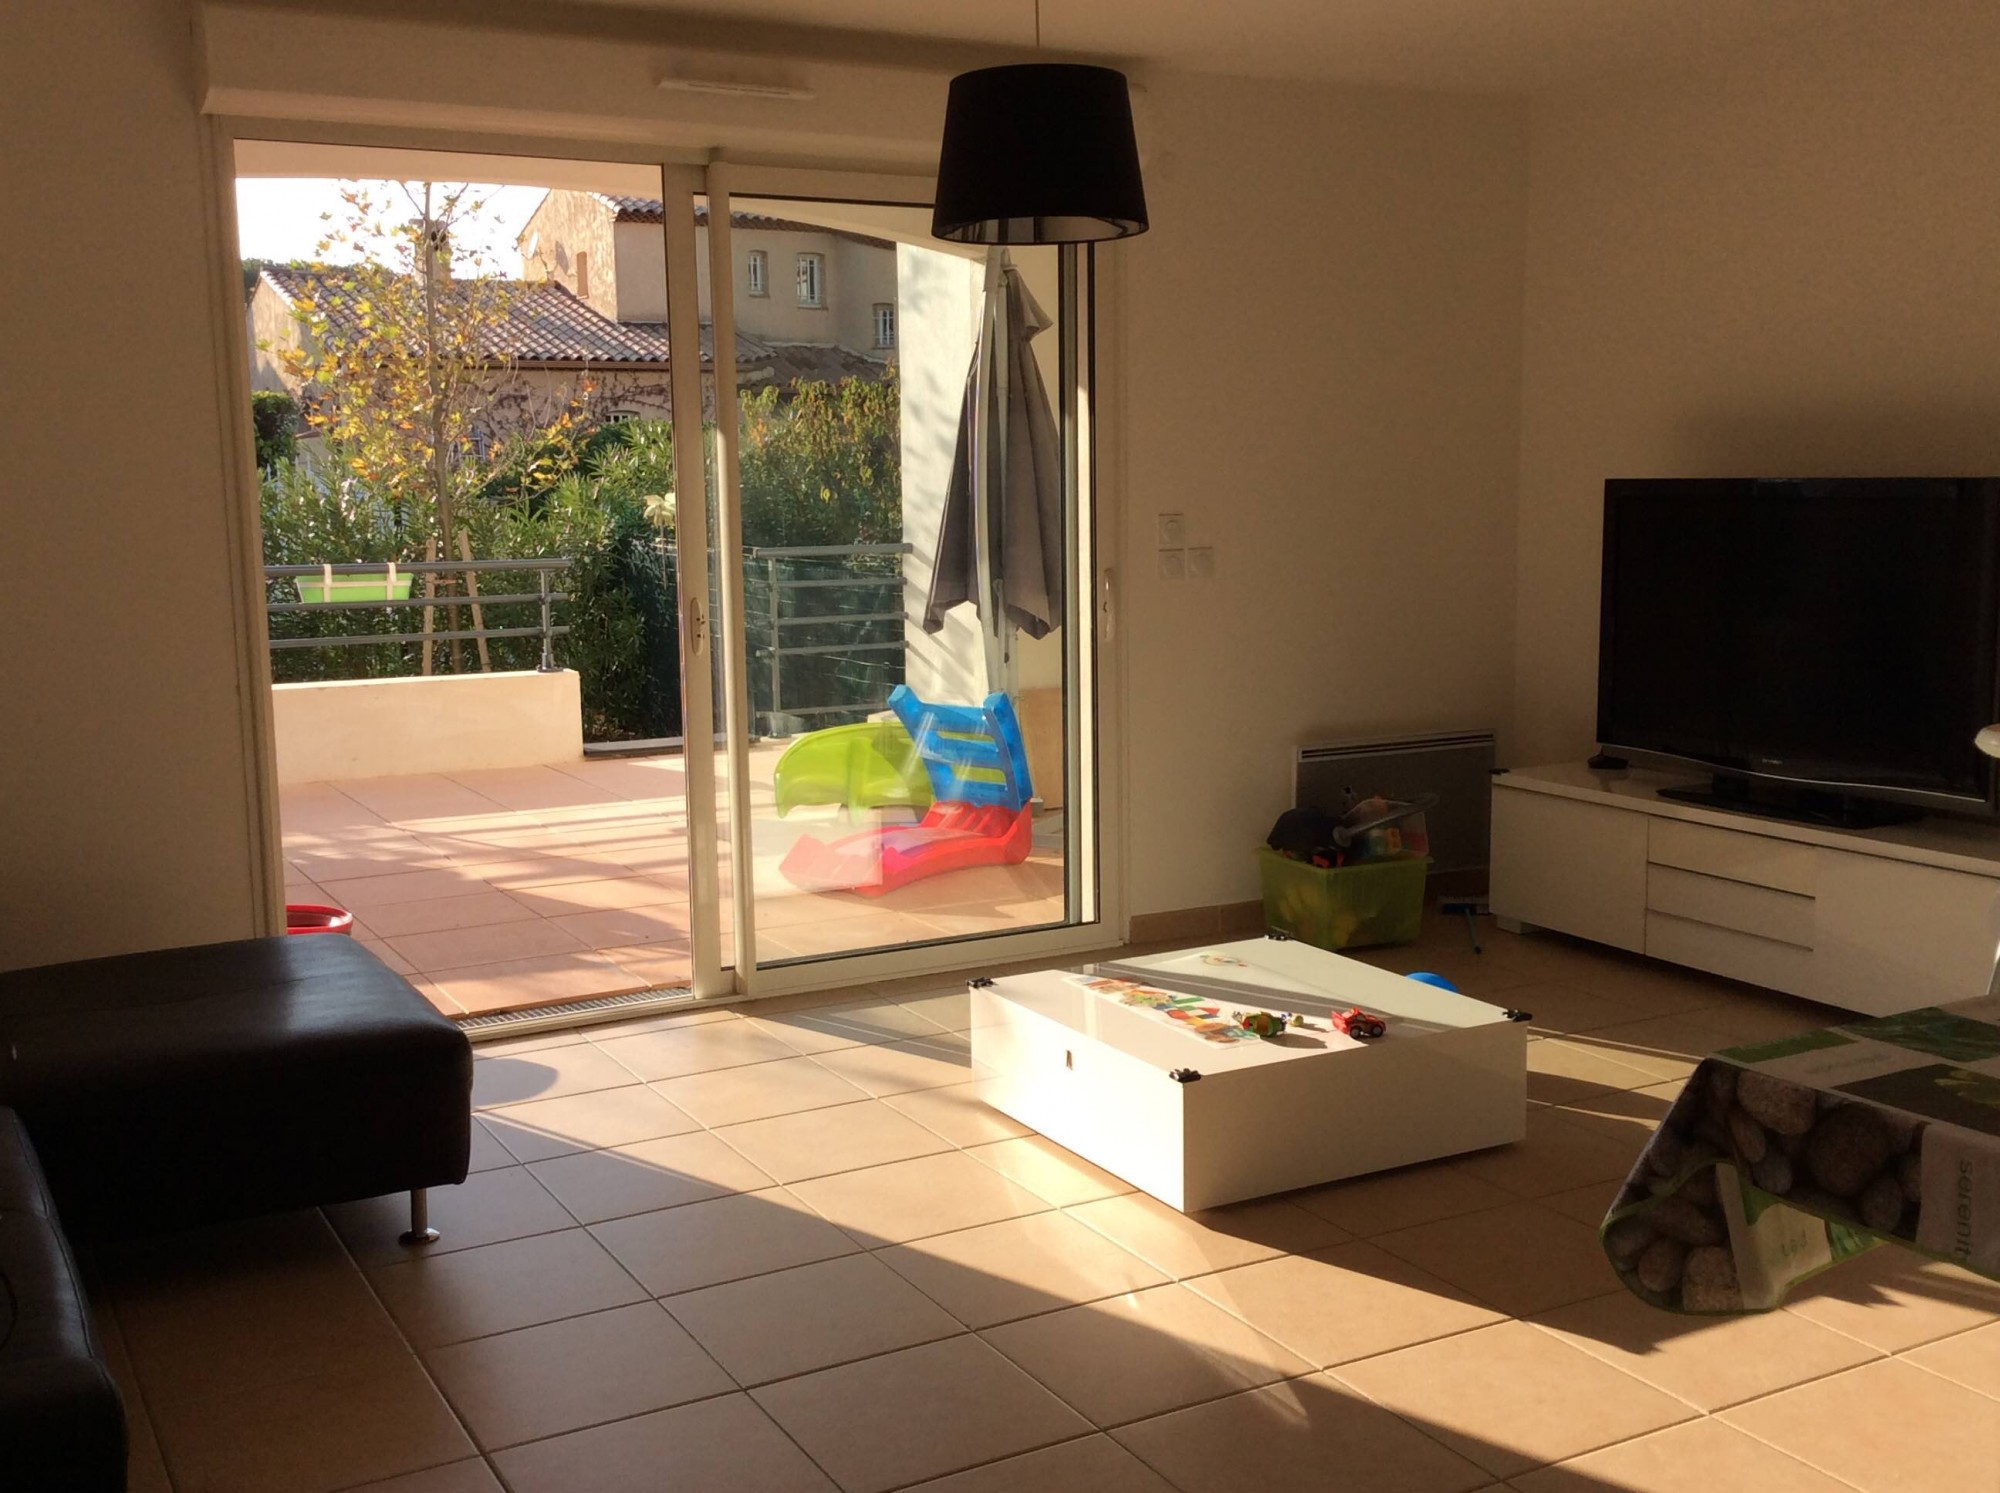 Deja loue bel appartement recent t3 en rez de jardin 13190 for Site de location appartement